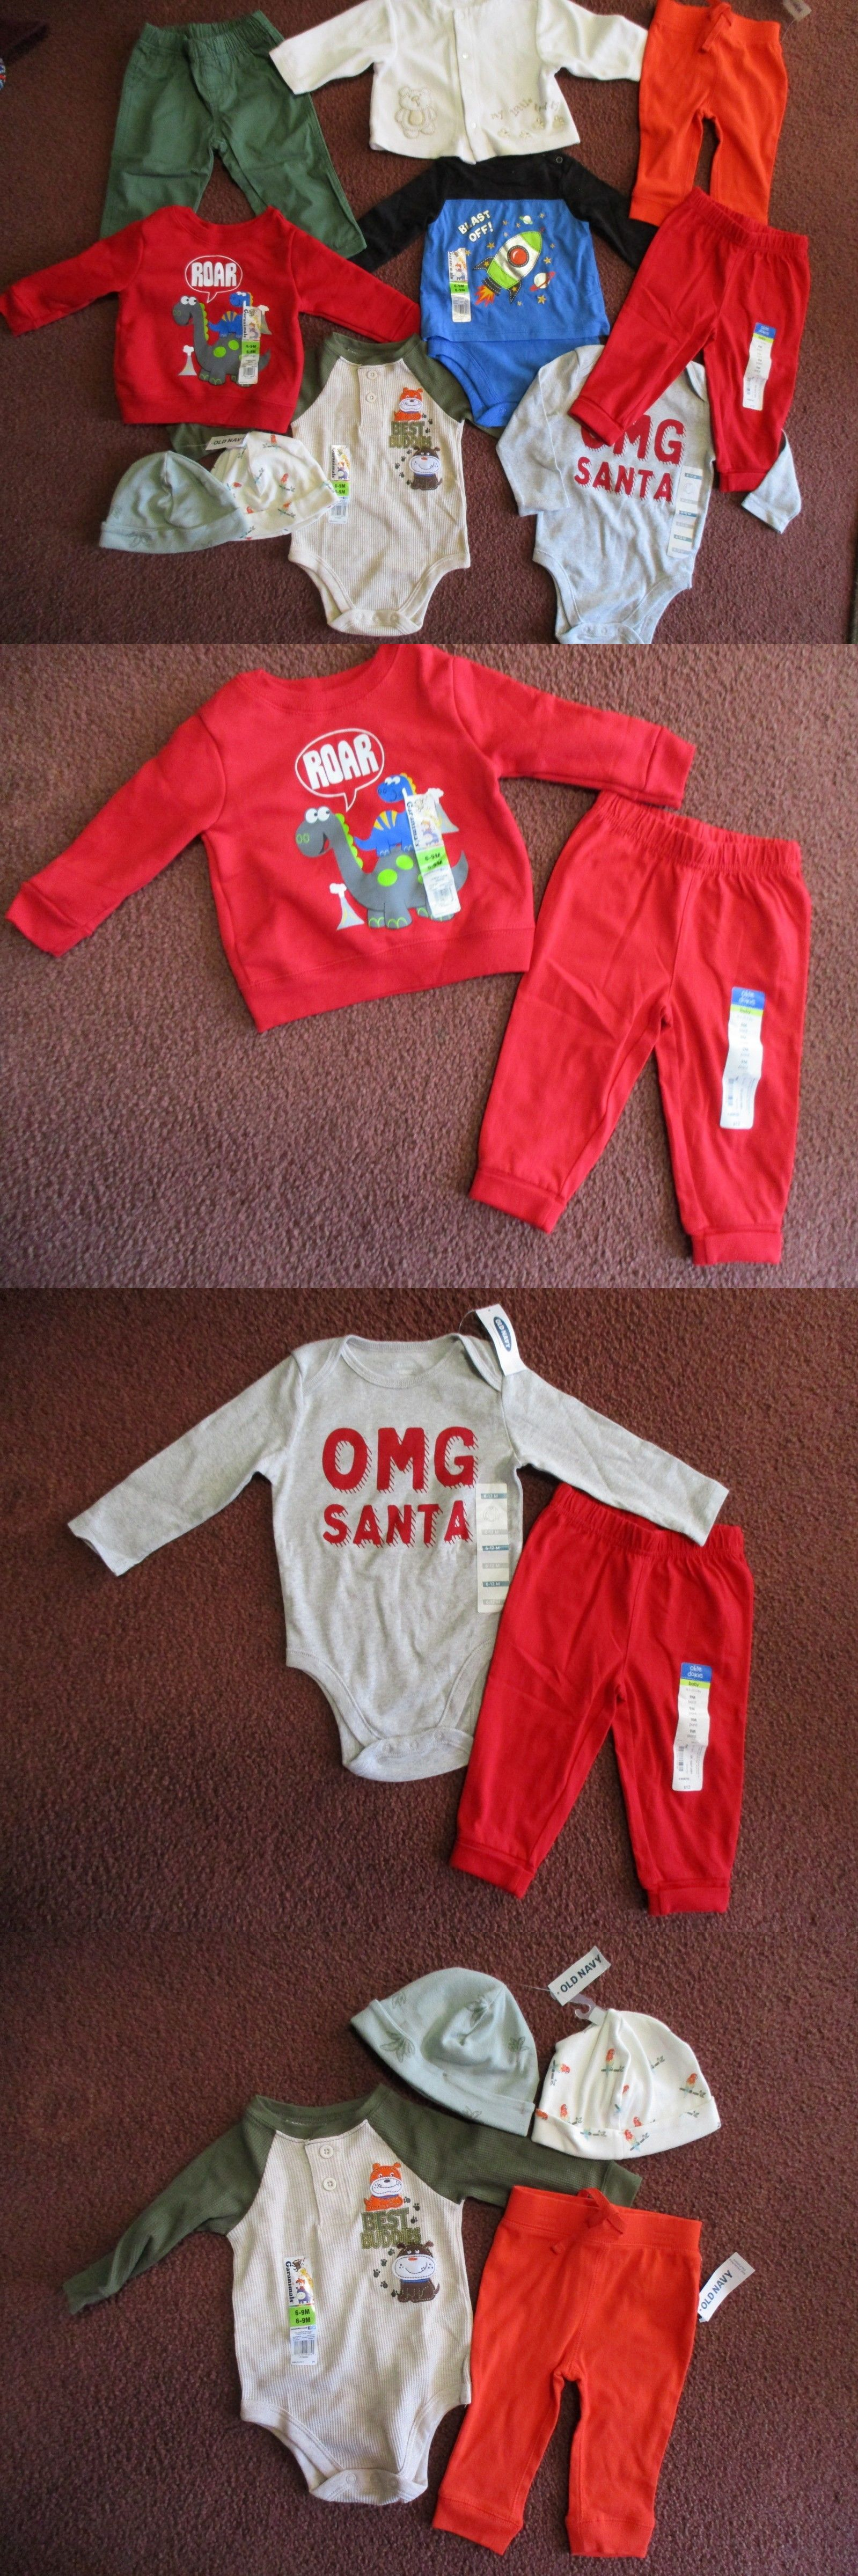 4e35776db5e8 Mixed Items and Lots 147342  10Pc Lot Baby Boys Size 6-12 Months ...